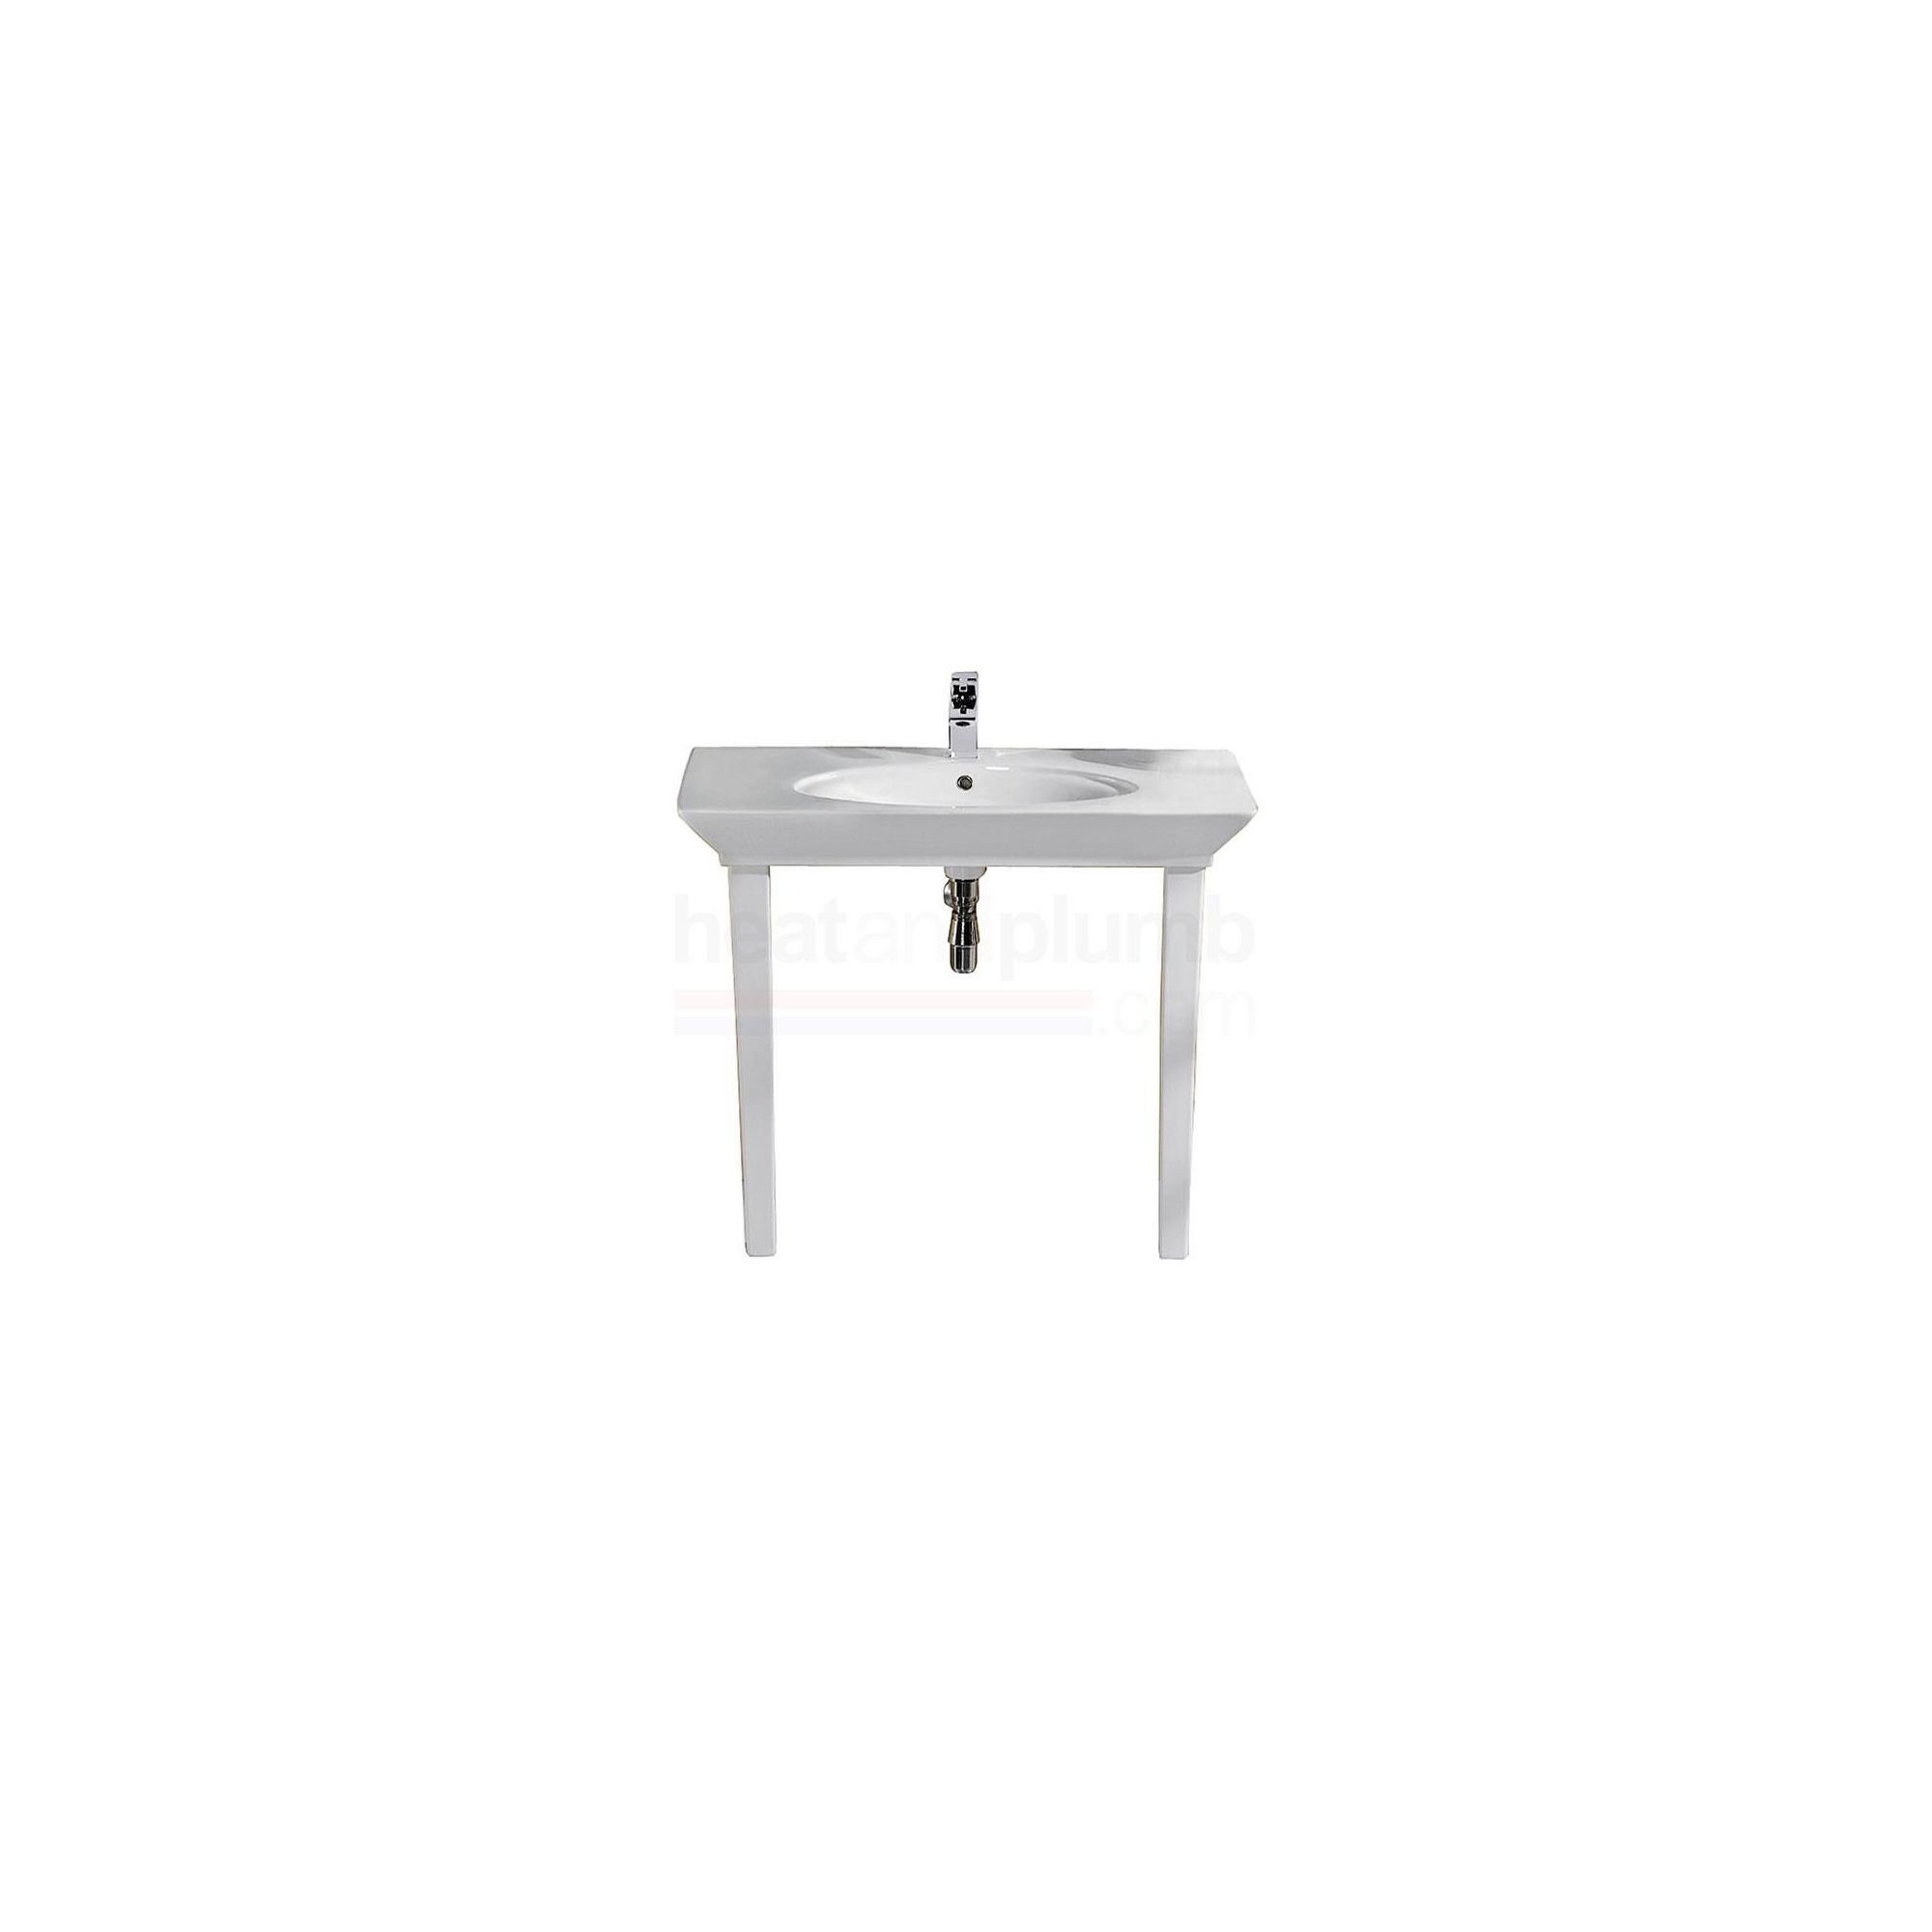 RAK Opulence White 'Her' 1 Piece Countertop Basin with Legs 1000mm Wide at Tesco Direct